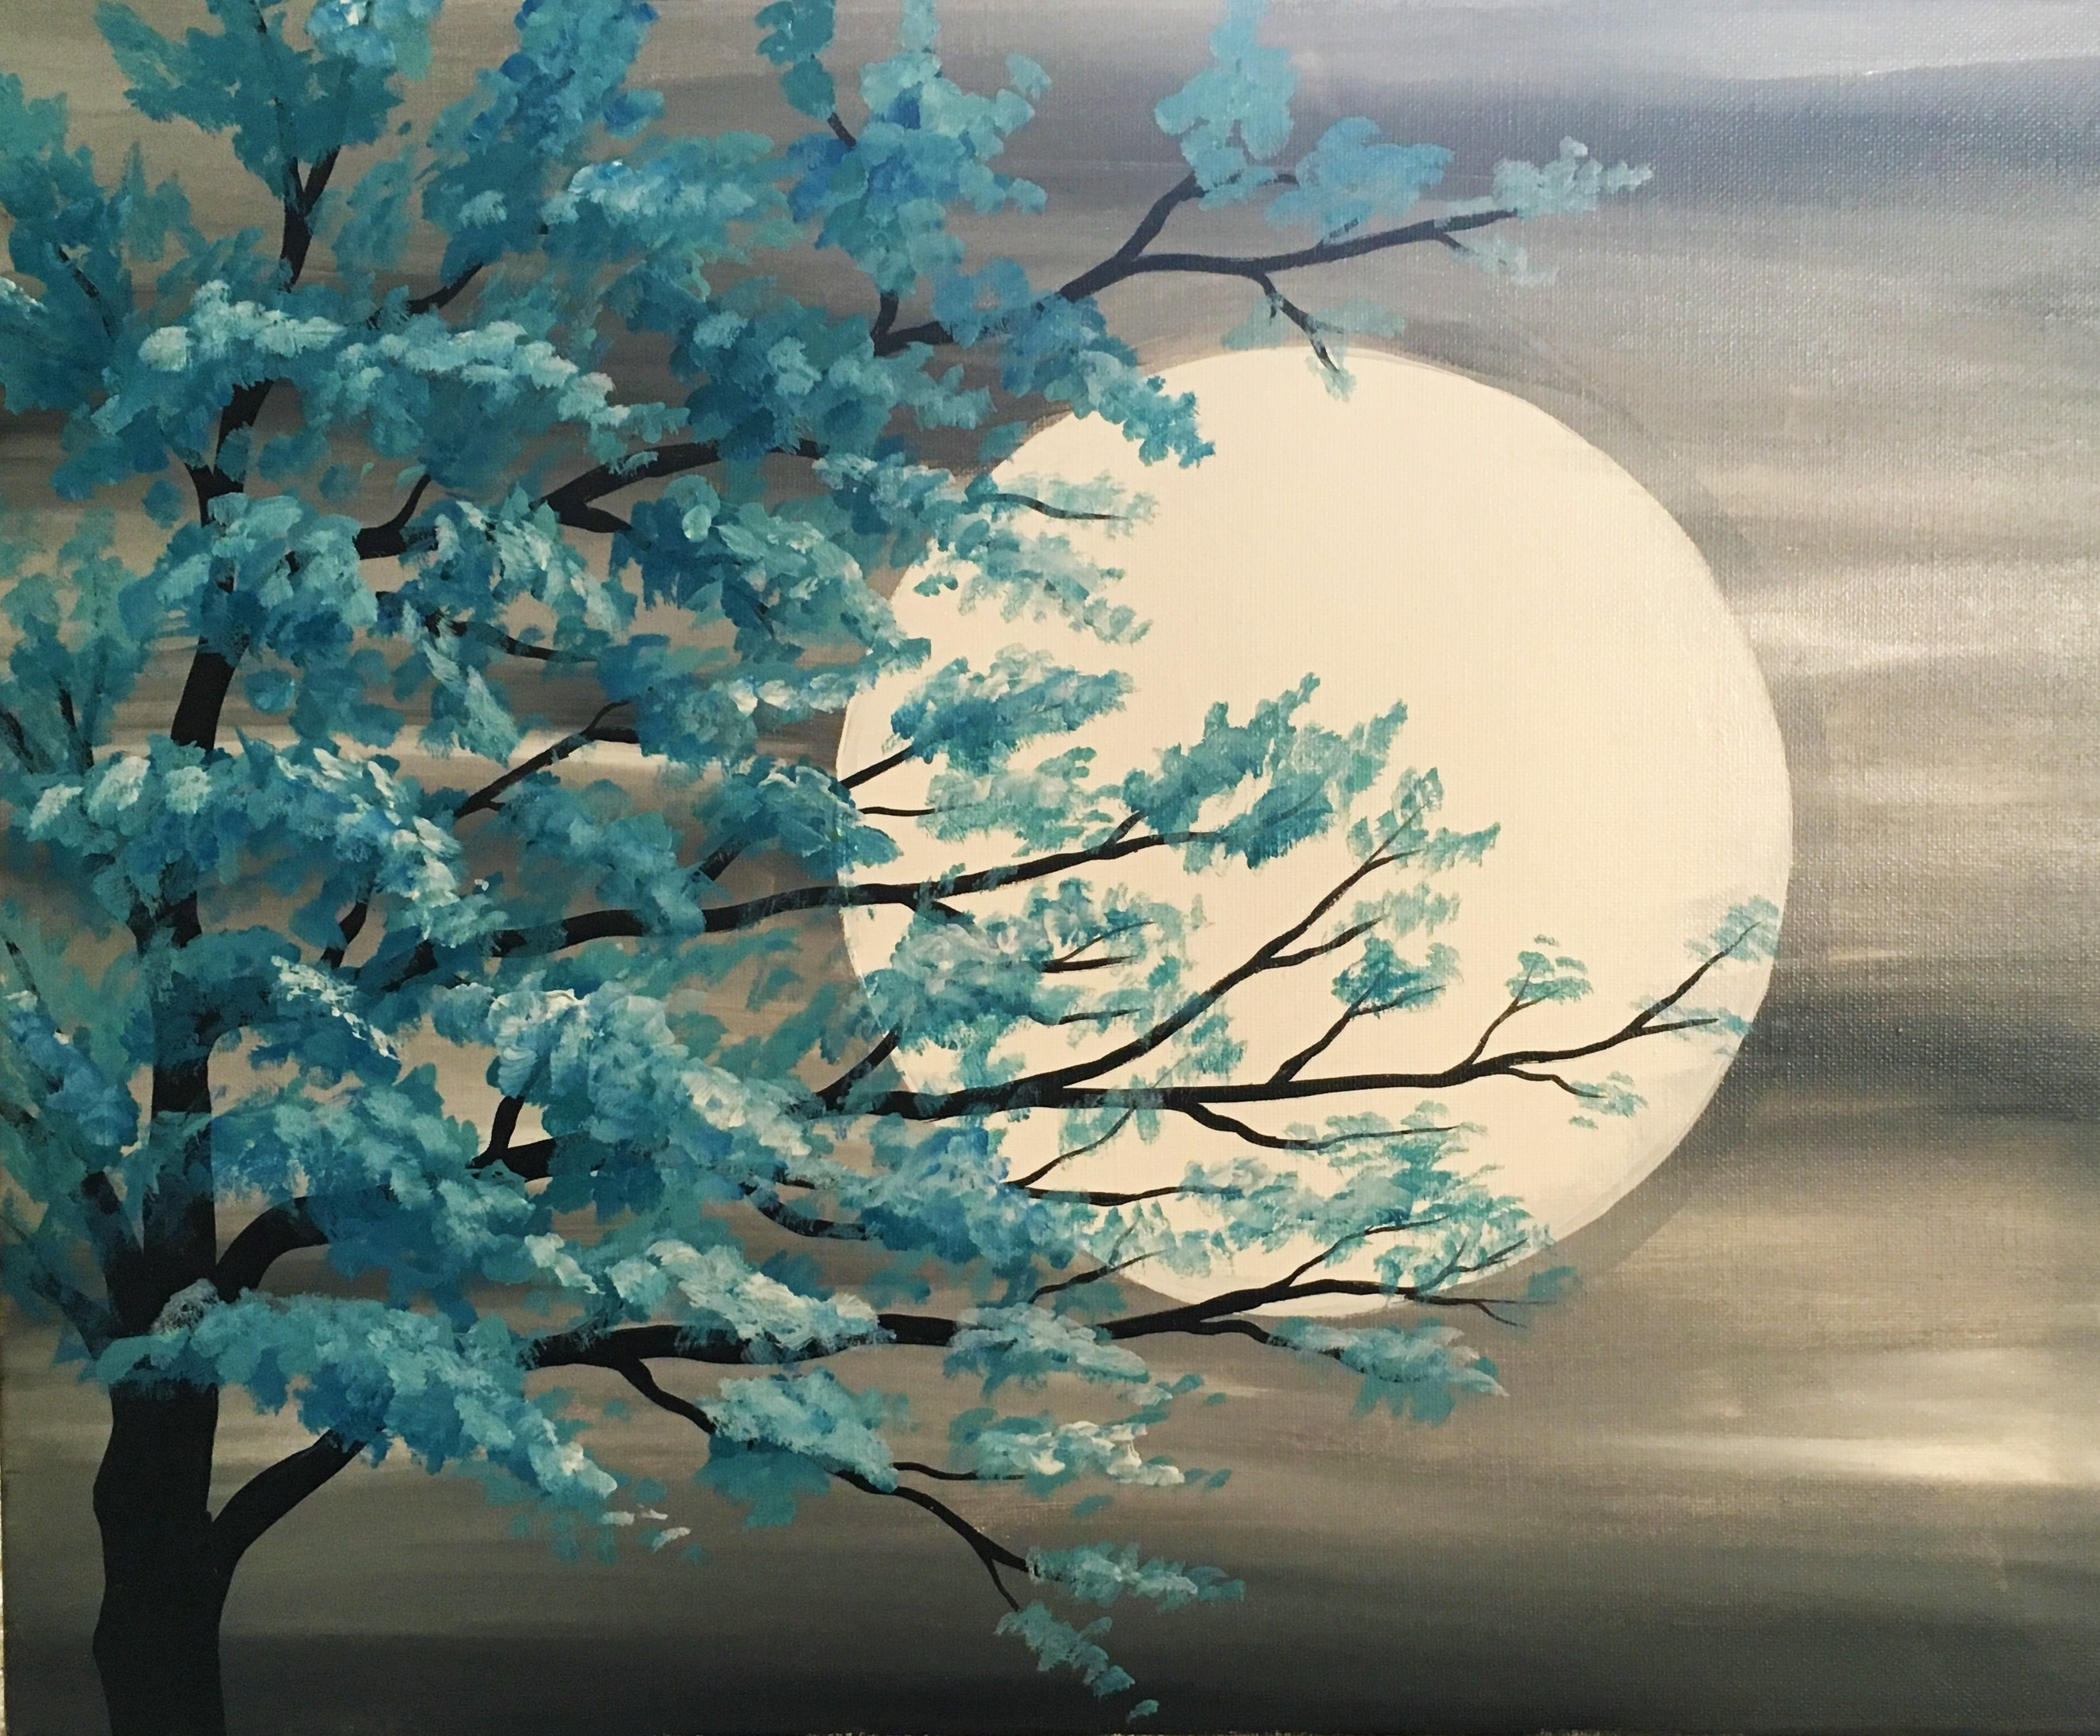 10 Fabulous Acrylic Painting Ideas For Beginners